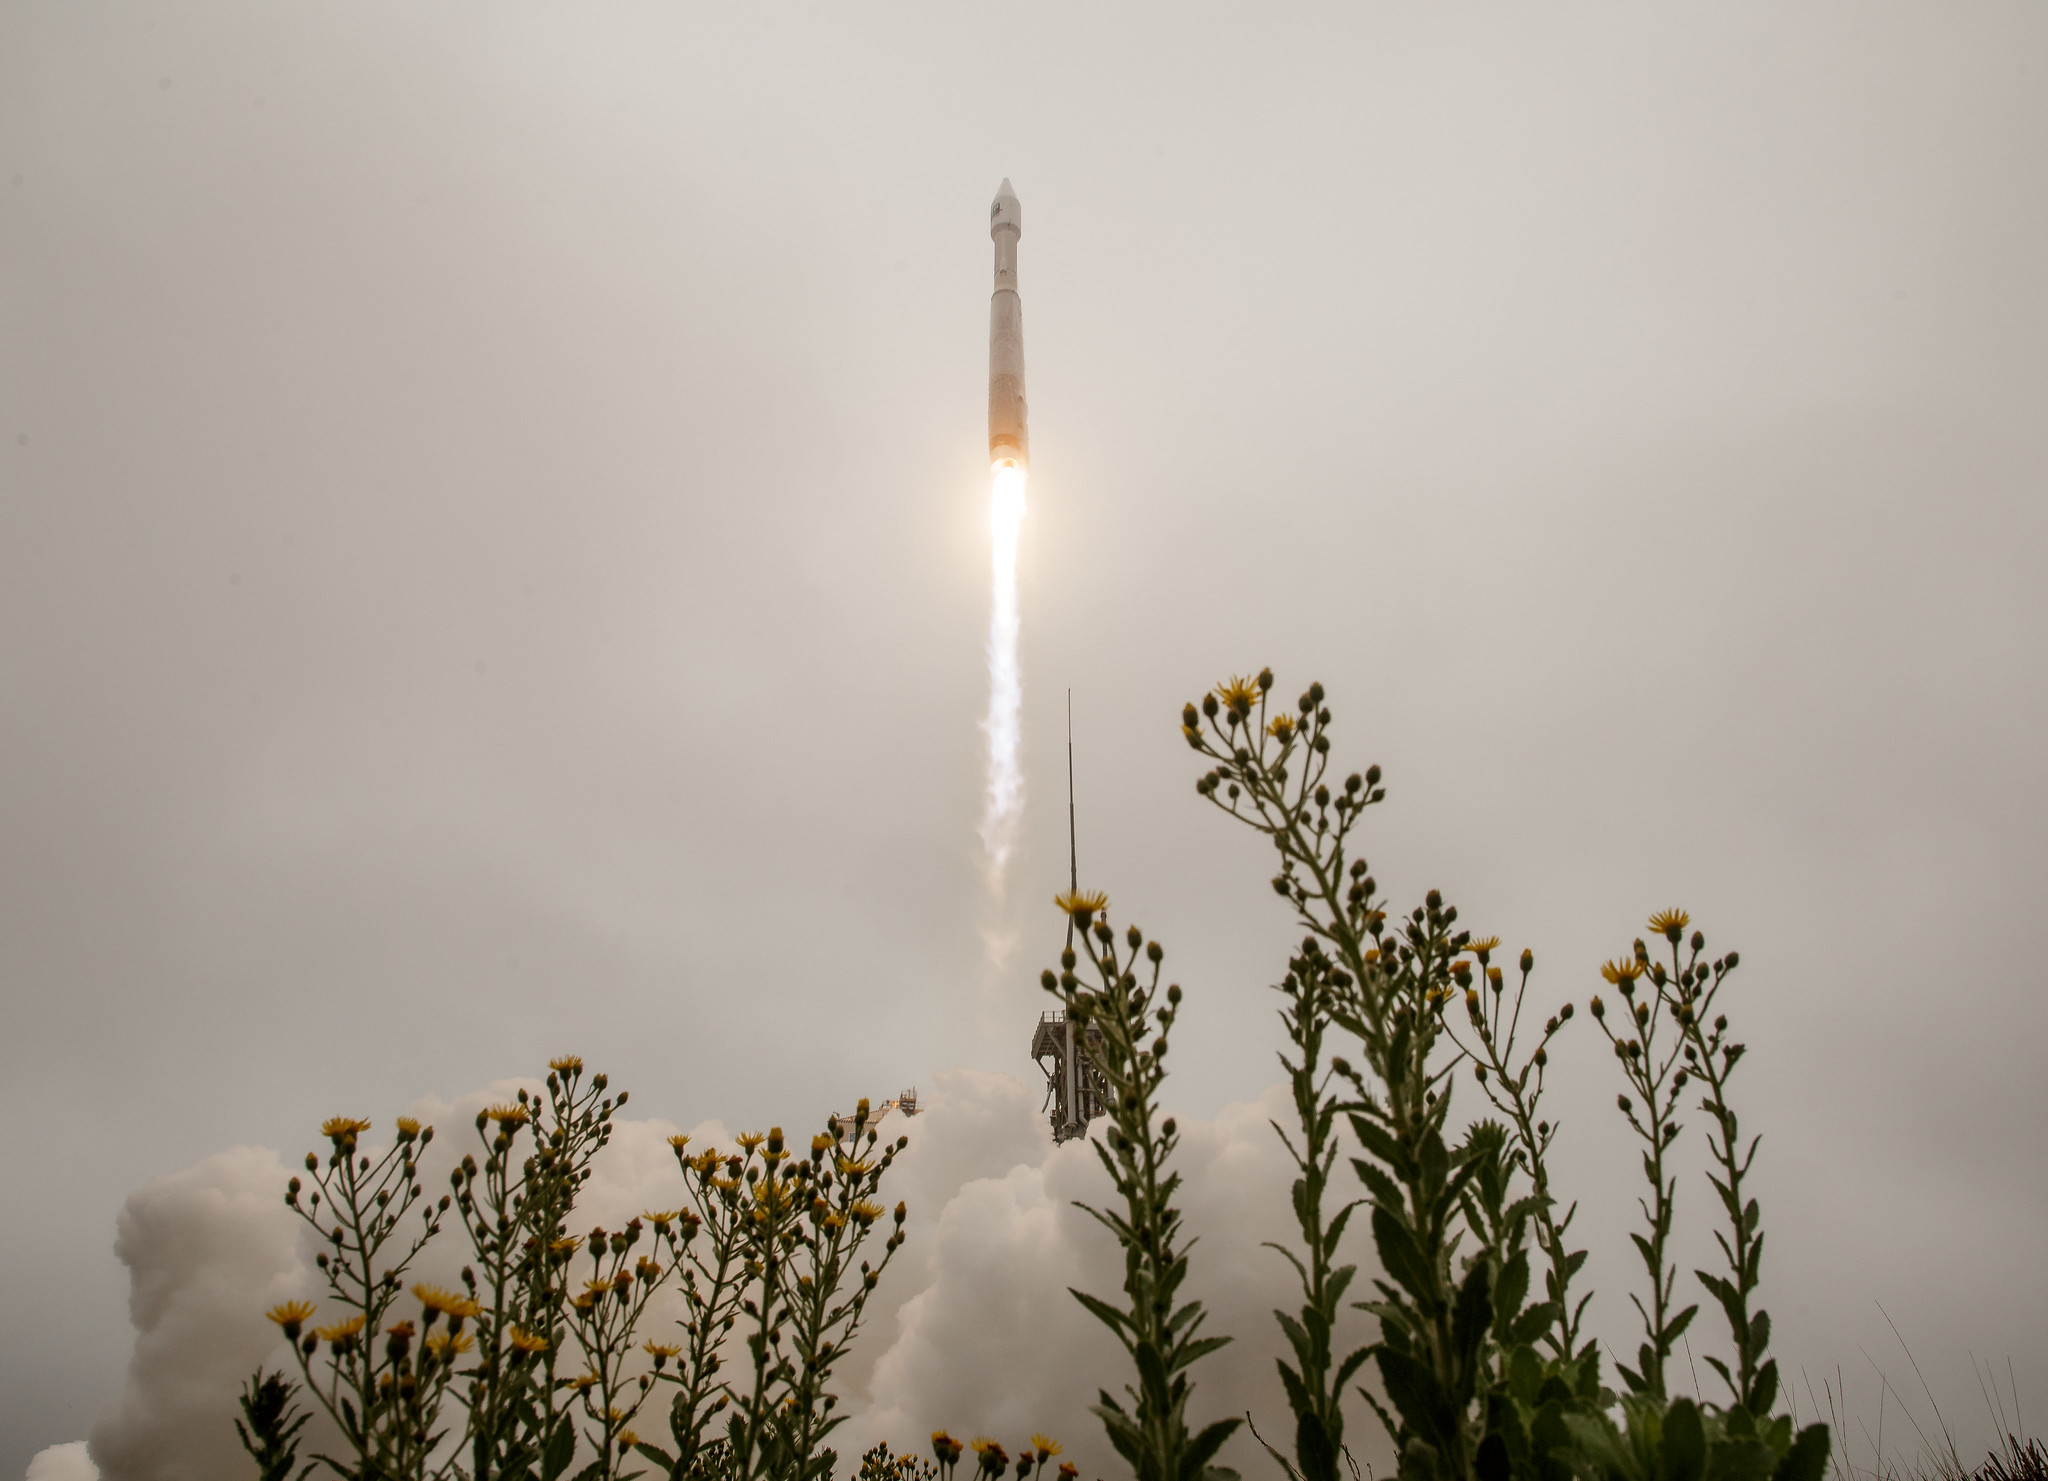 NASA launches powerful Landsat 9 satellite to monitor climate change, forest cover and more